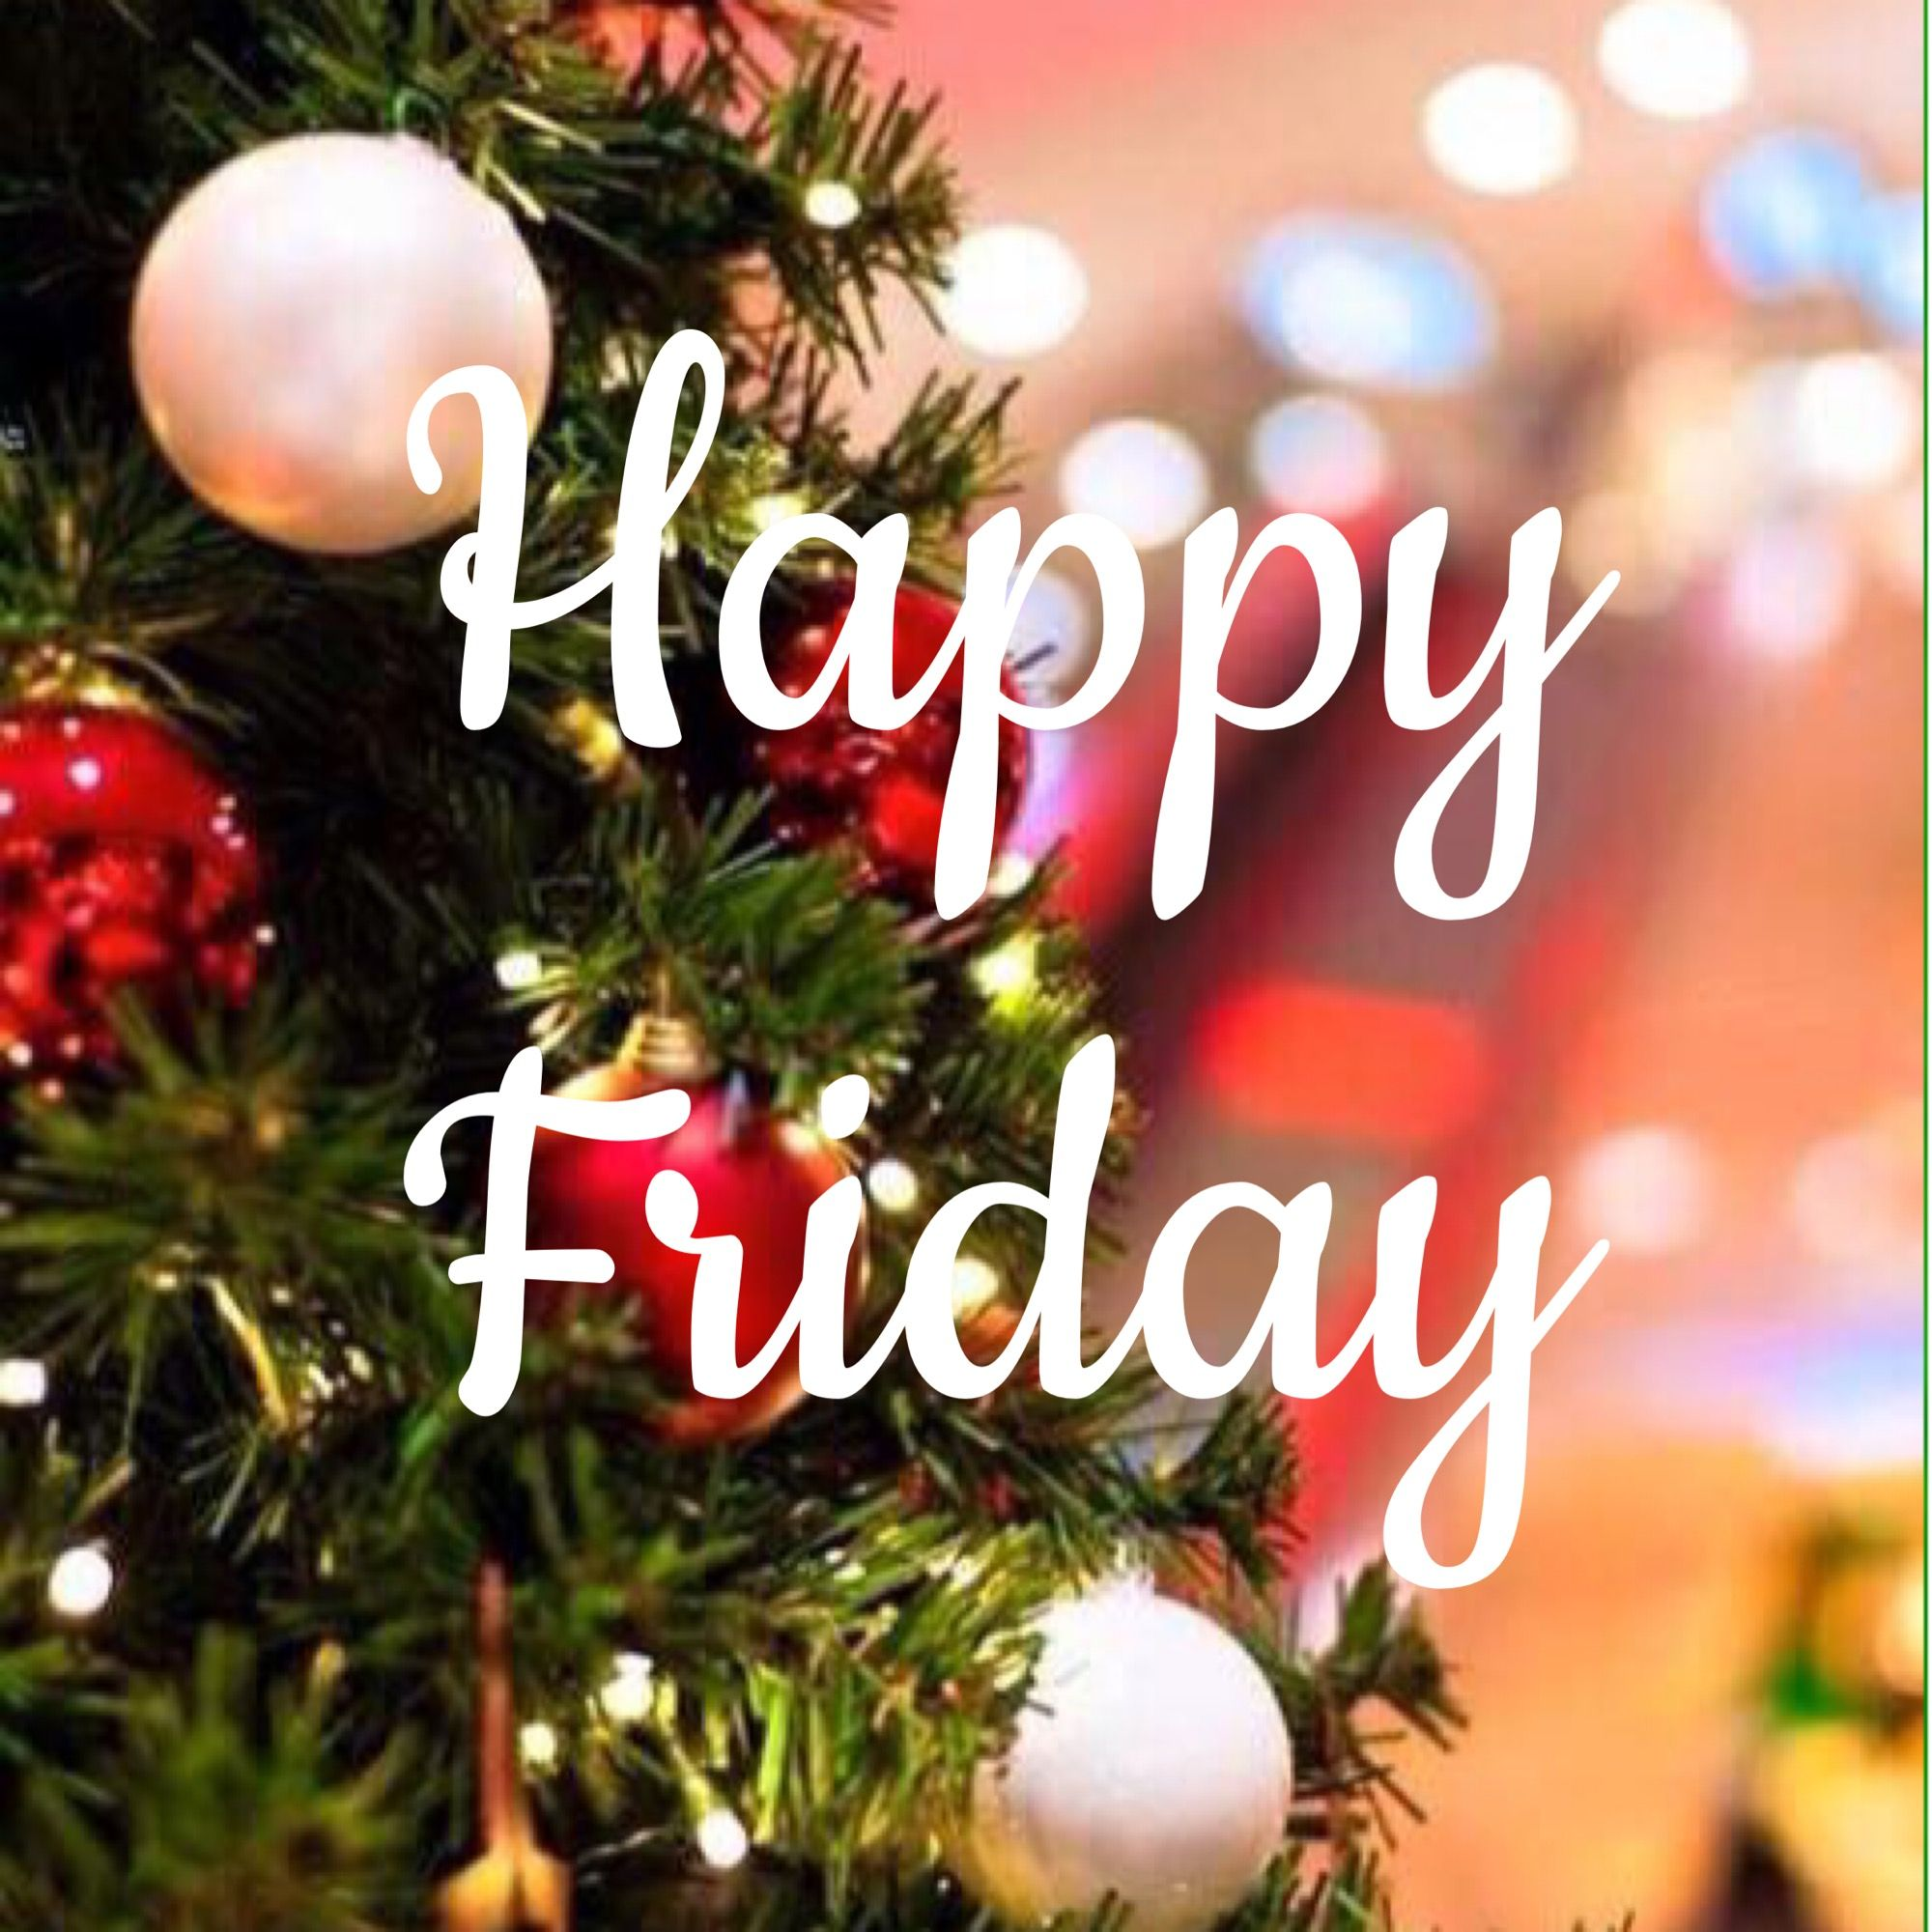 Happy Friday: Happy Friday, My Dear! Merry Christmas, Tricia.